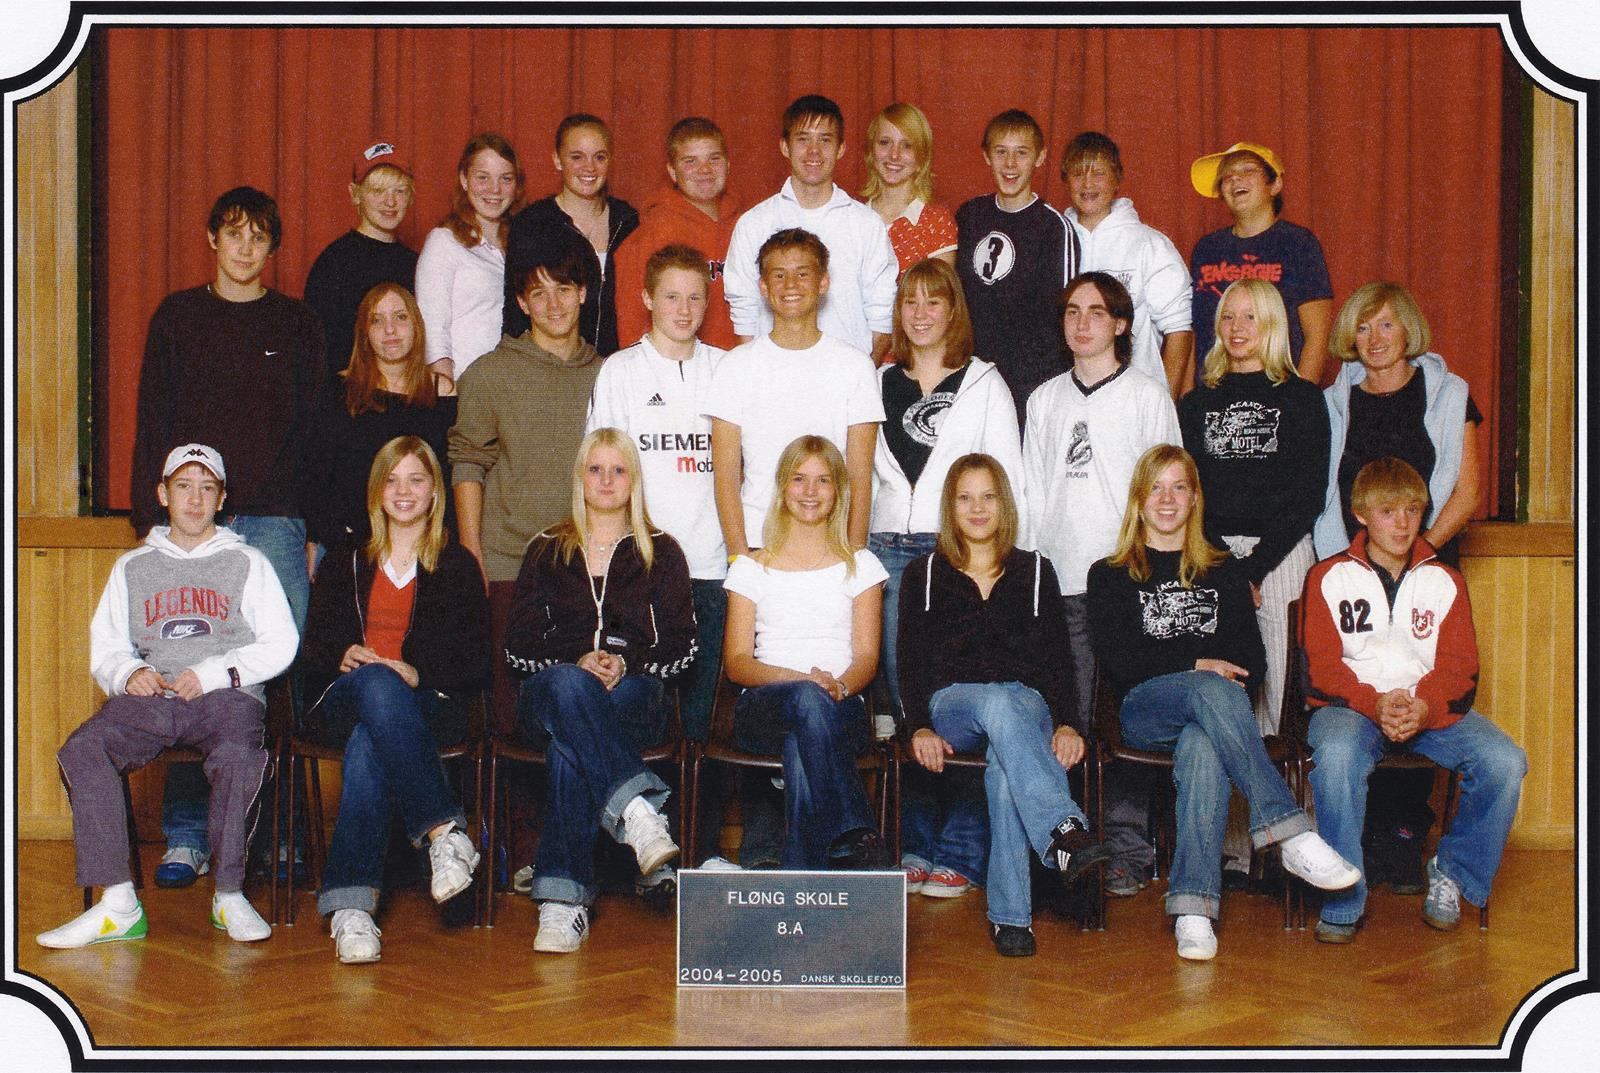 IMG_8.A 2004-05